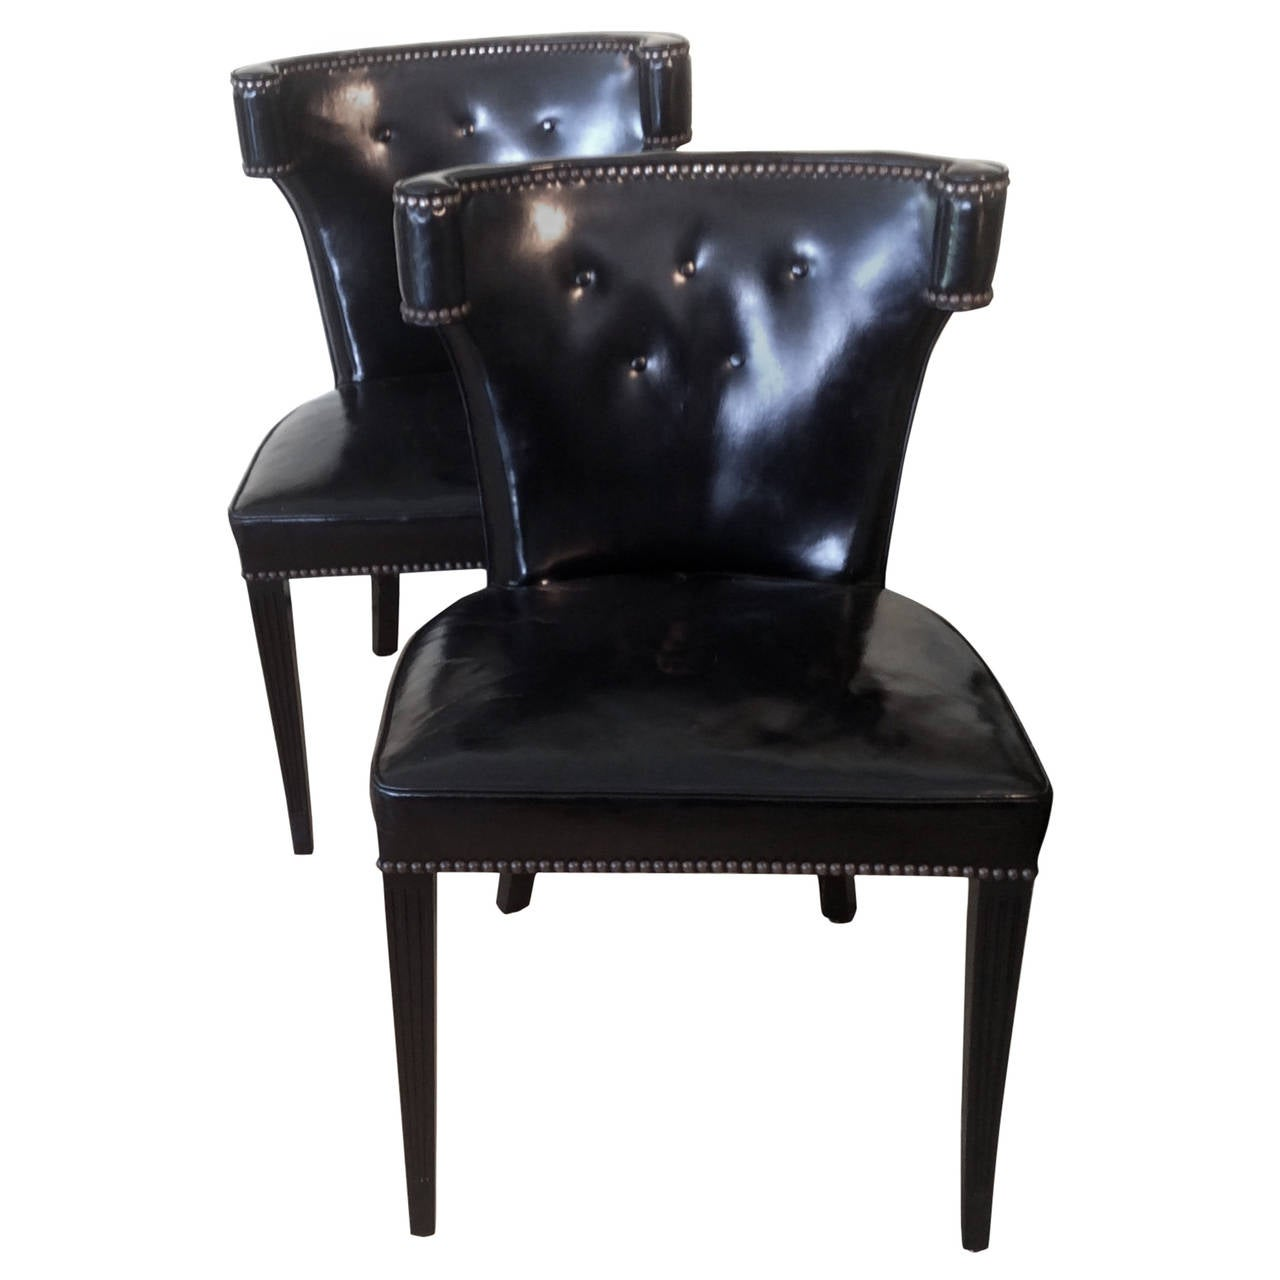 gentlemans chair great office chairs pair of black leather at 1stdibs